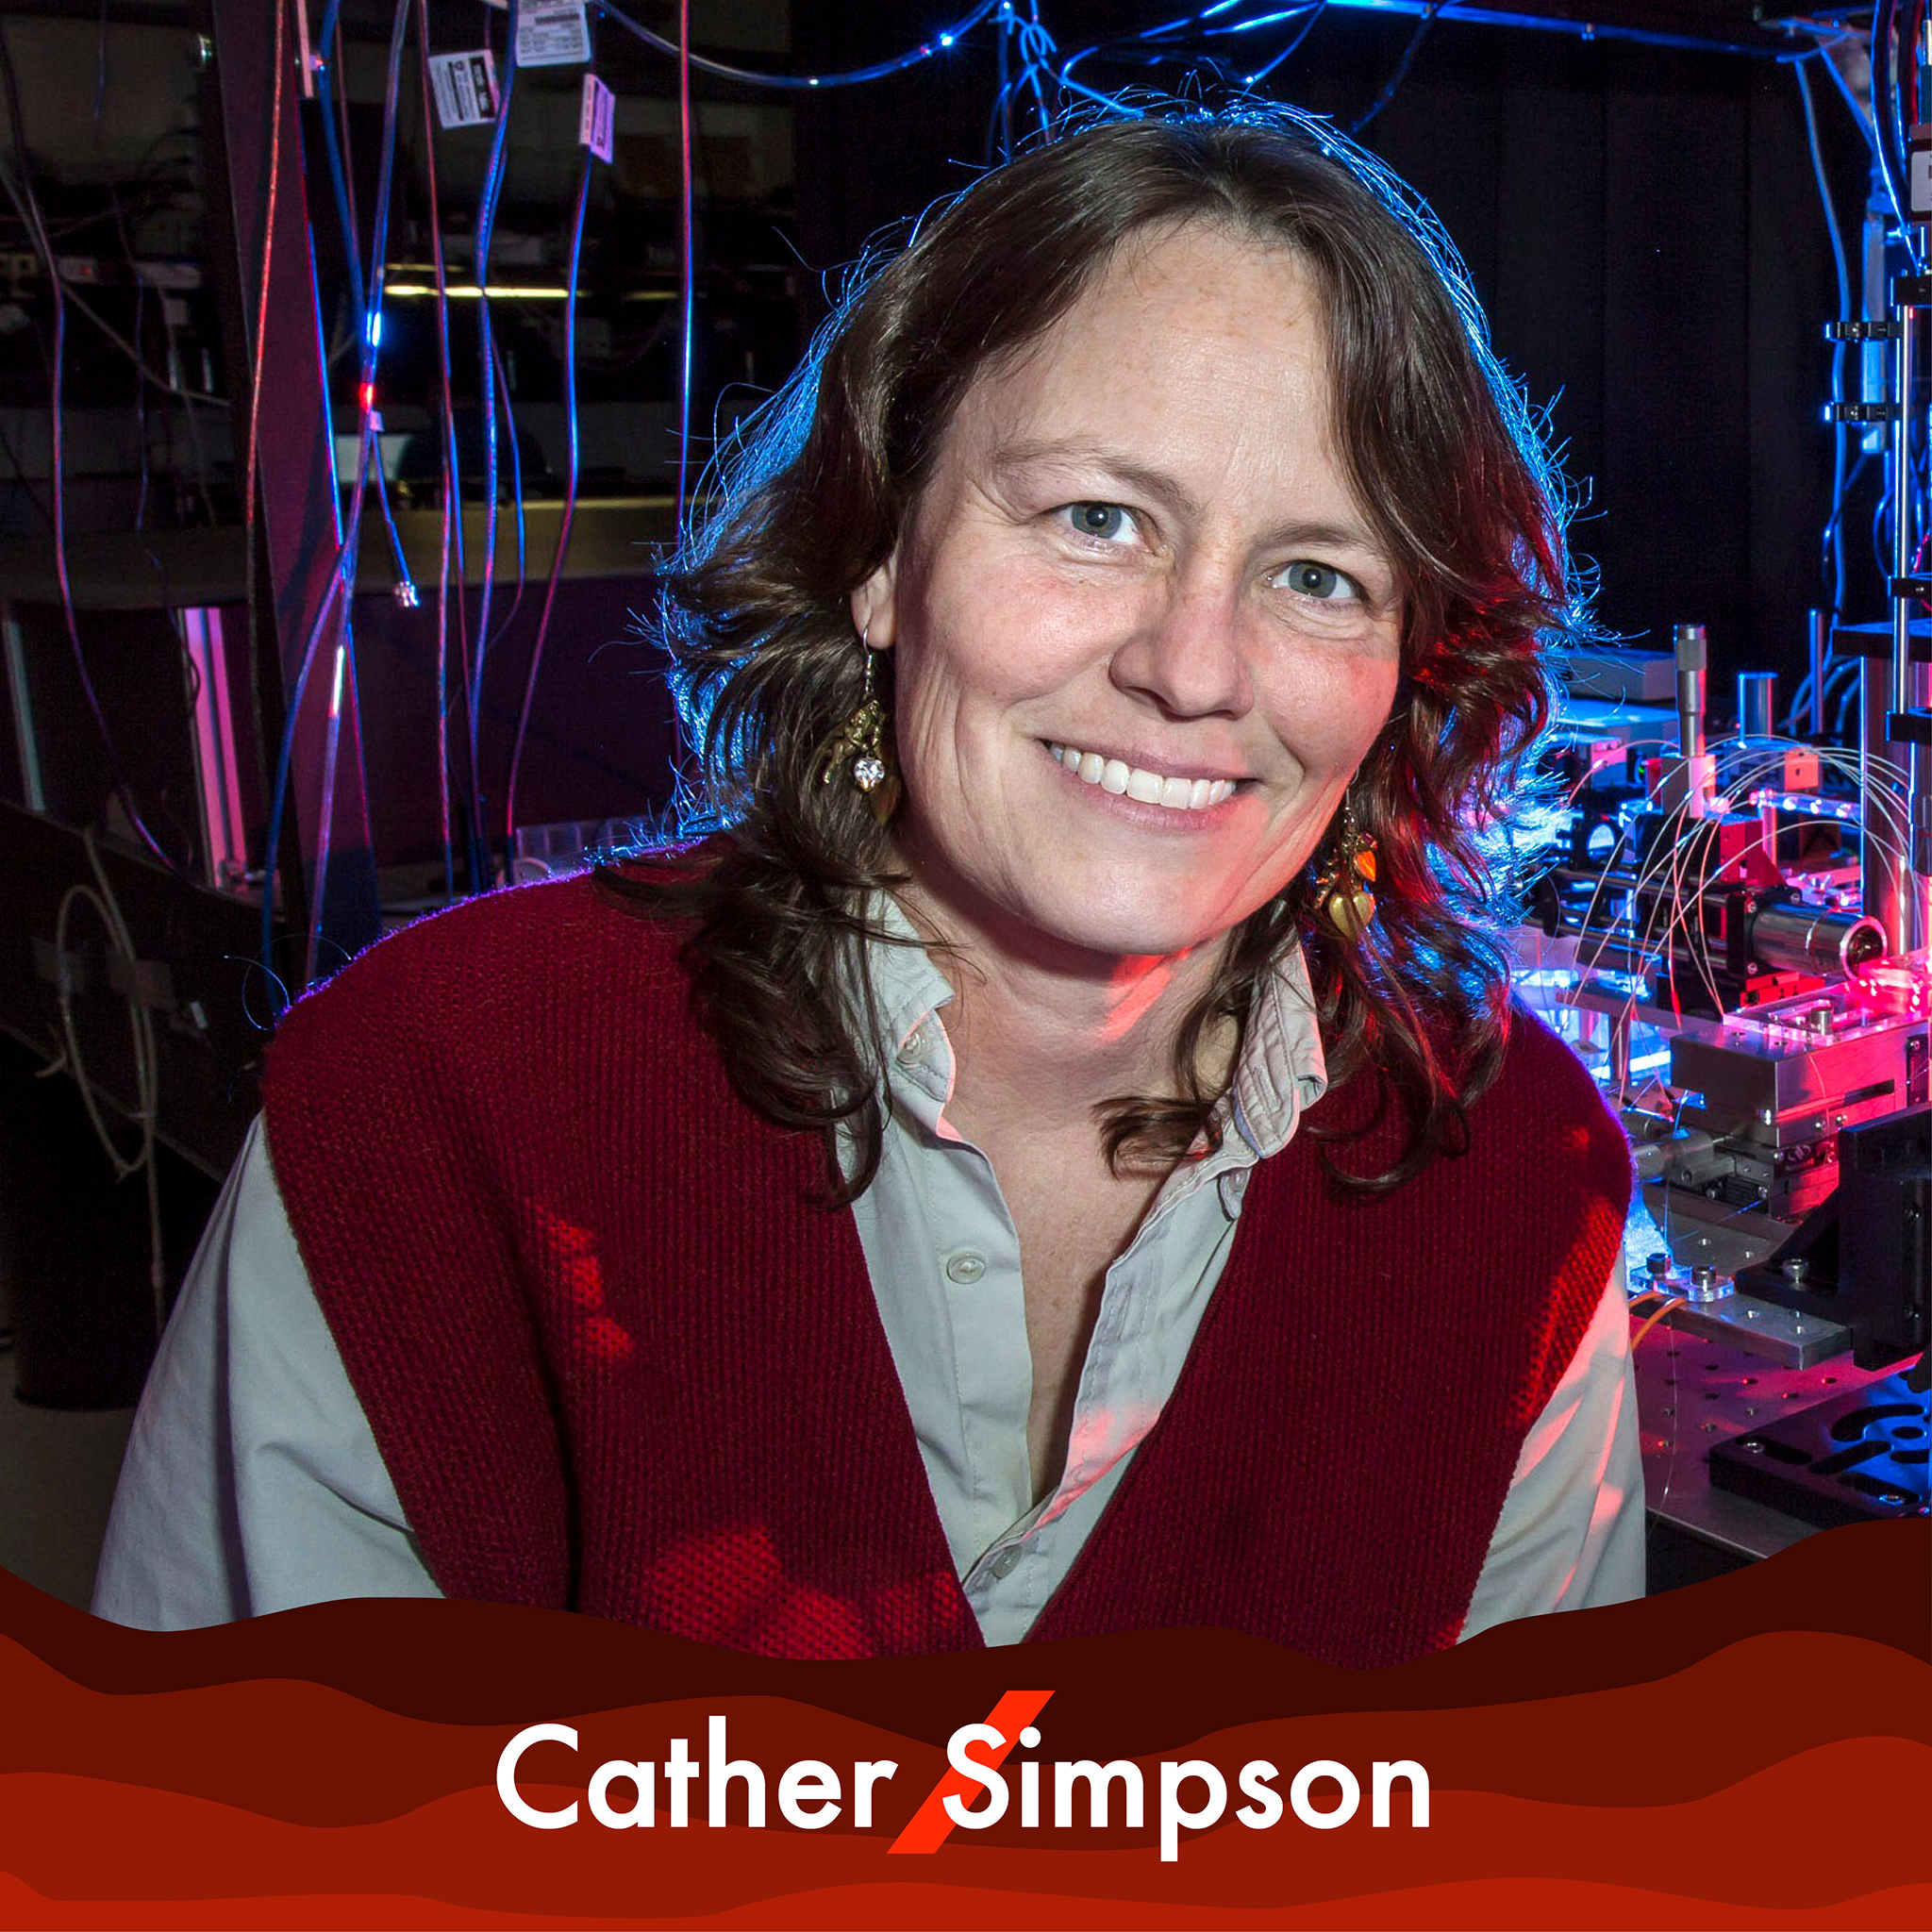 A picture of Cather Simpson